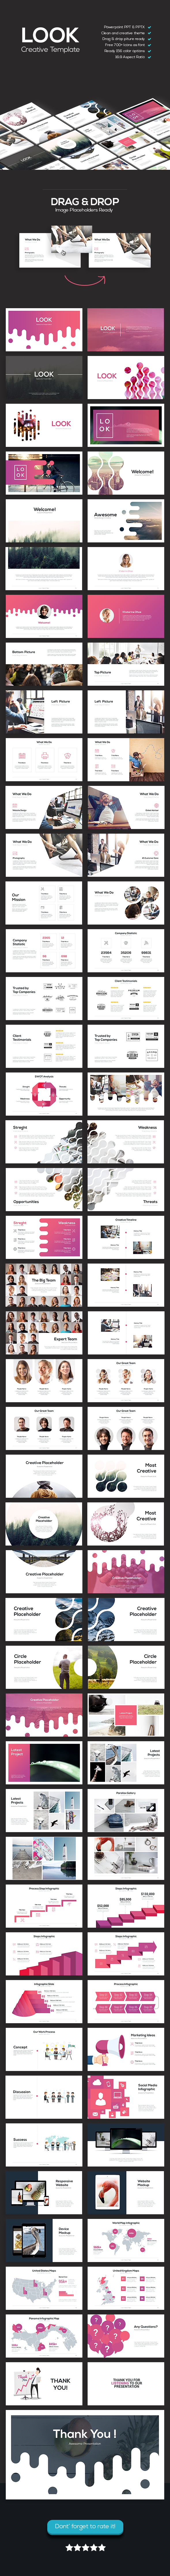 Creative Theme PowerPoint